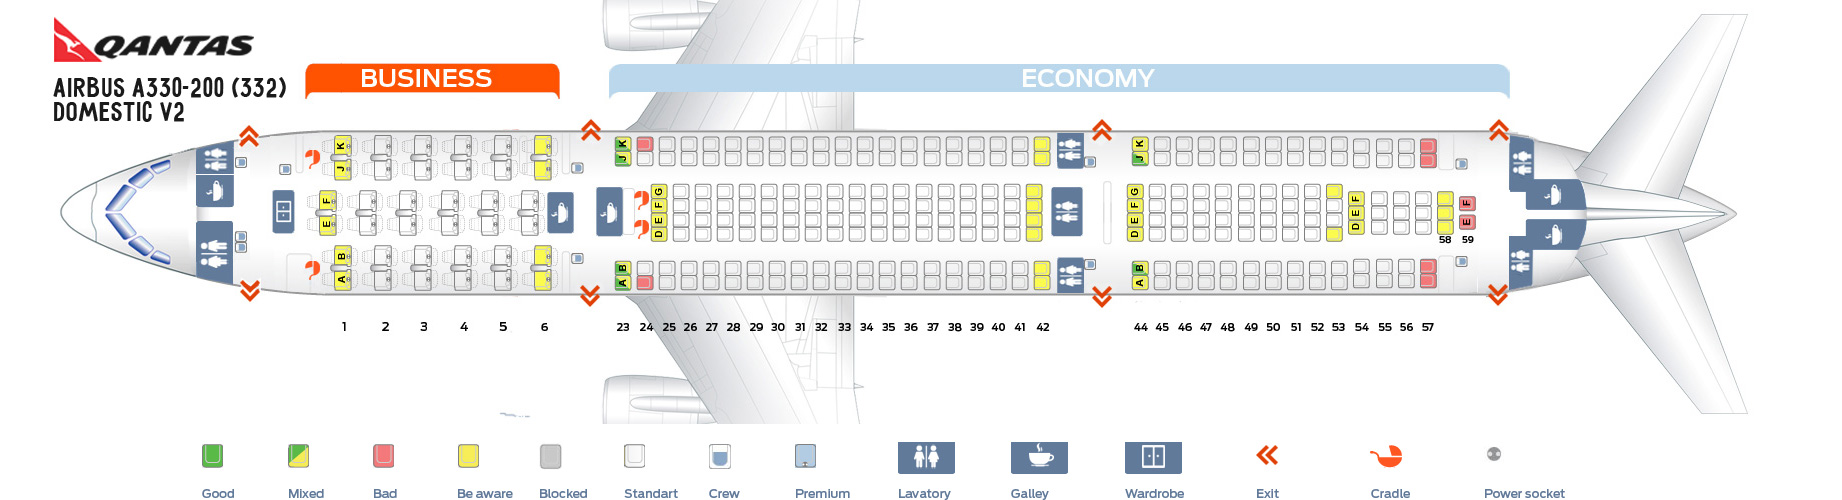 Seat map Airbus A330-200 Qantas Airways  Best seats in the plane